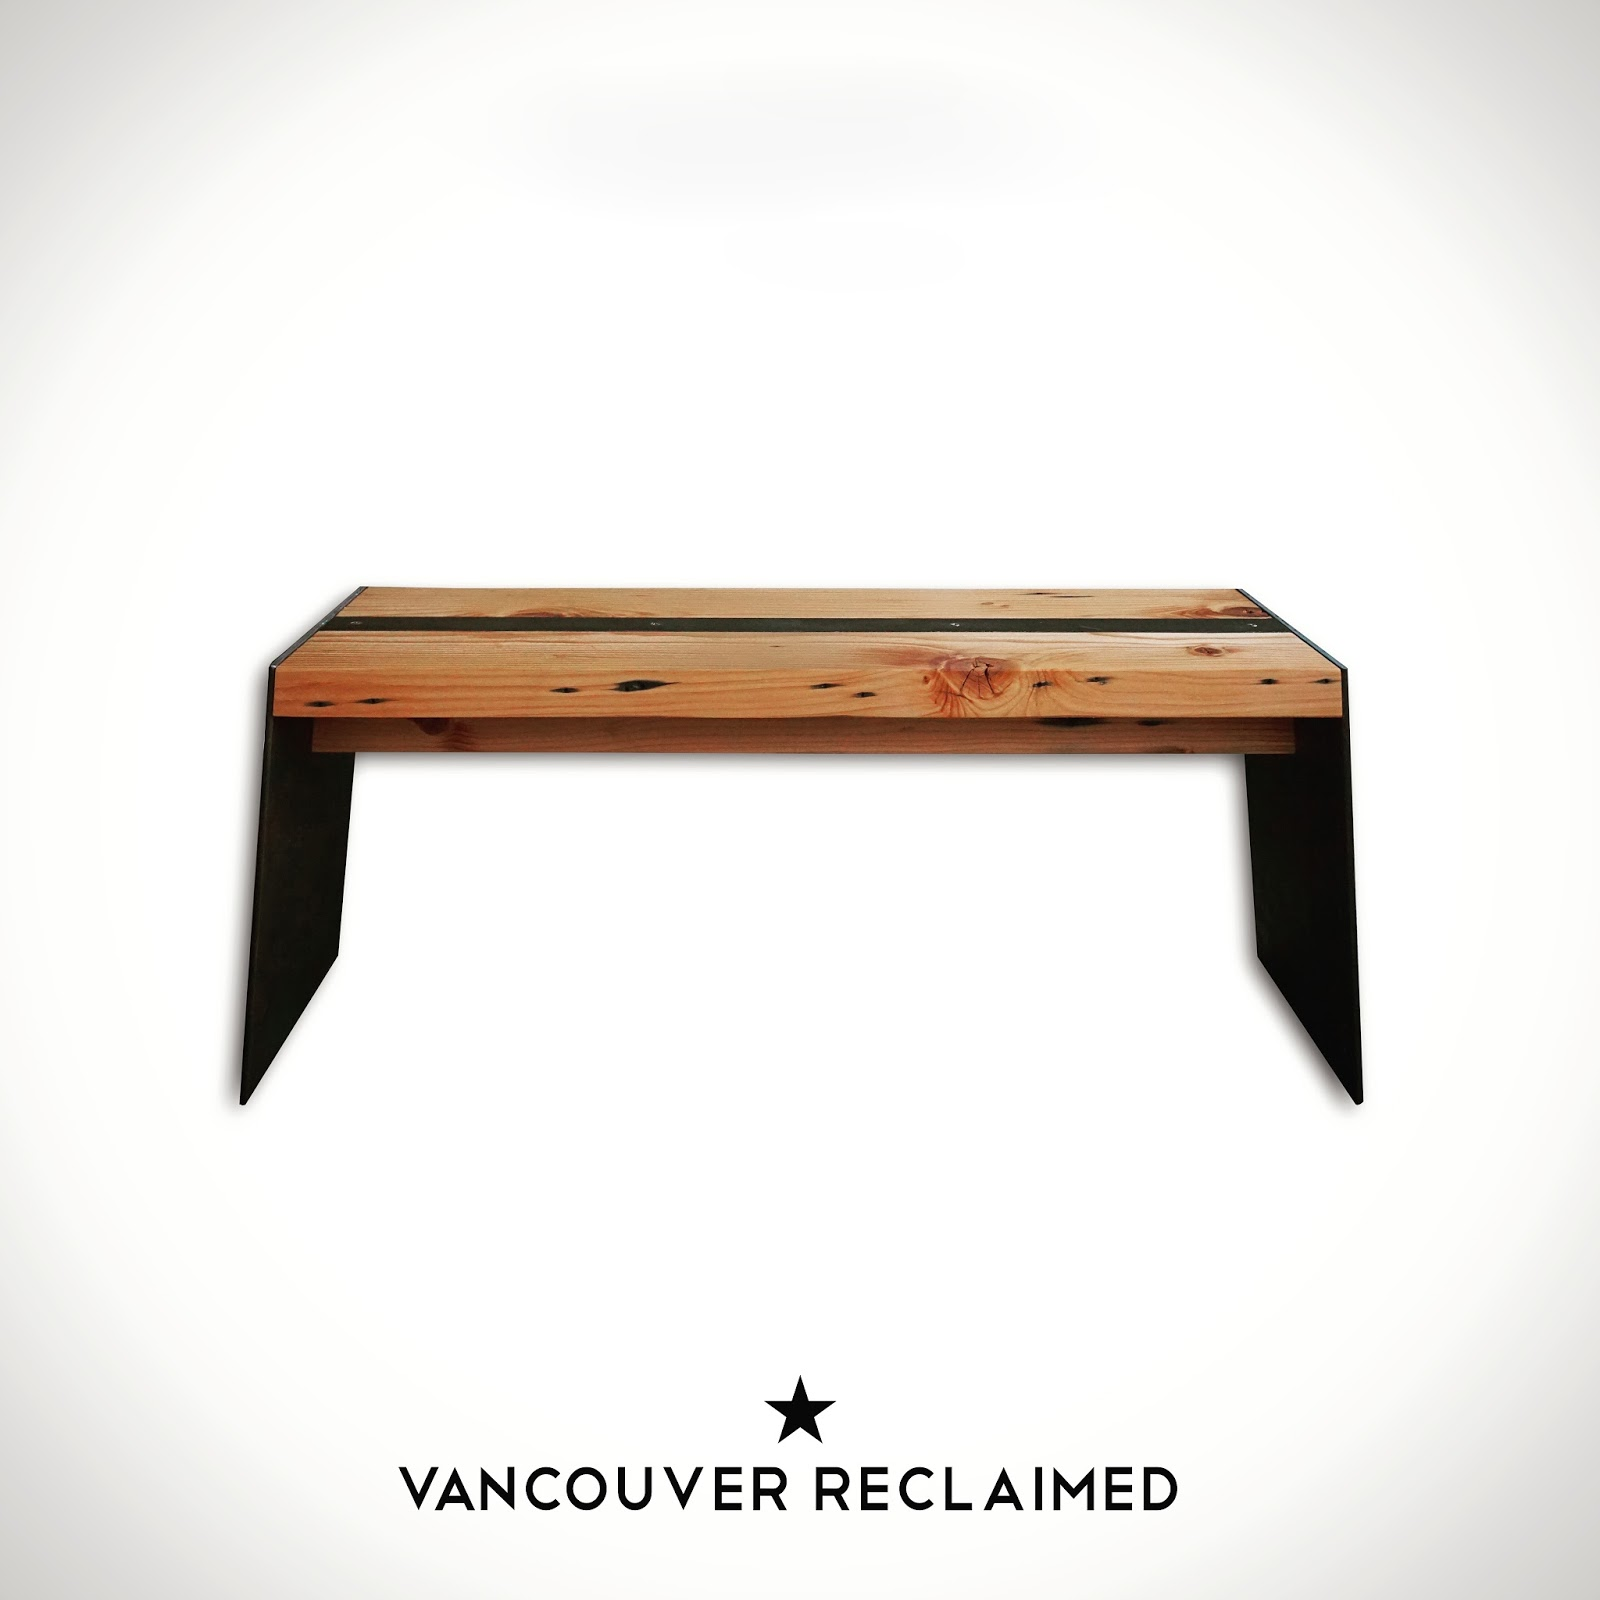 Vancouver Reclaimed